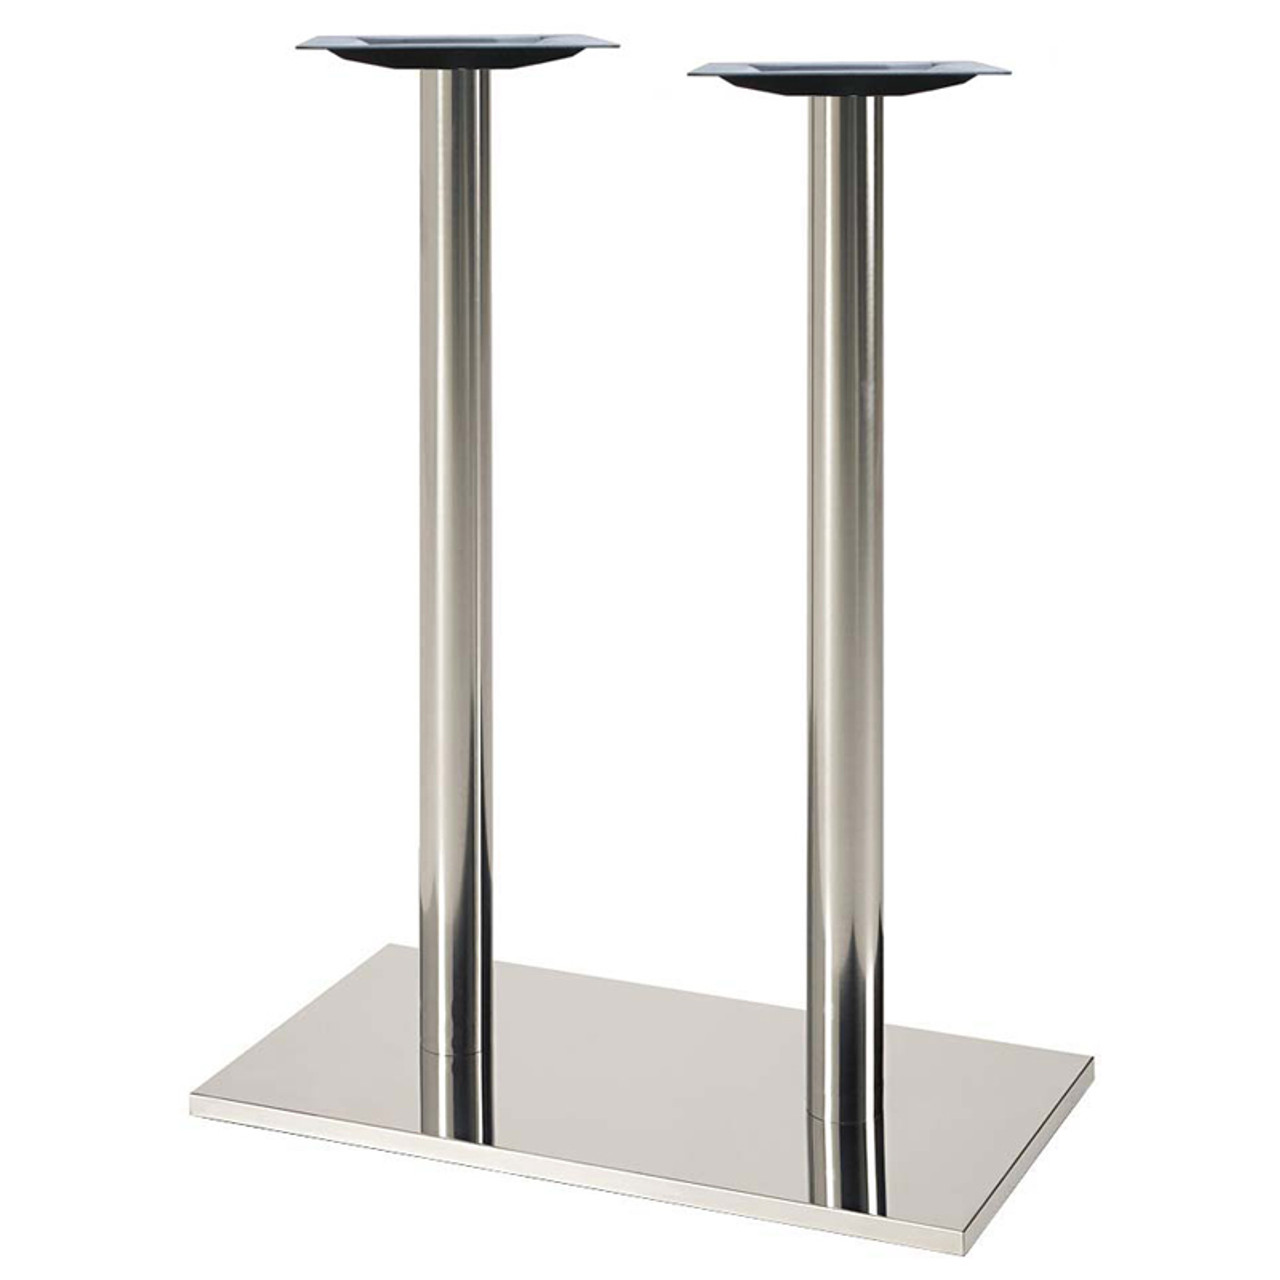 "Square, Brushed Stainless Steel Table Base, 42-1/2"" height, 16""x28"" square base, two 3""diameter steel columns - replacementtablelegs.com"